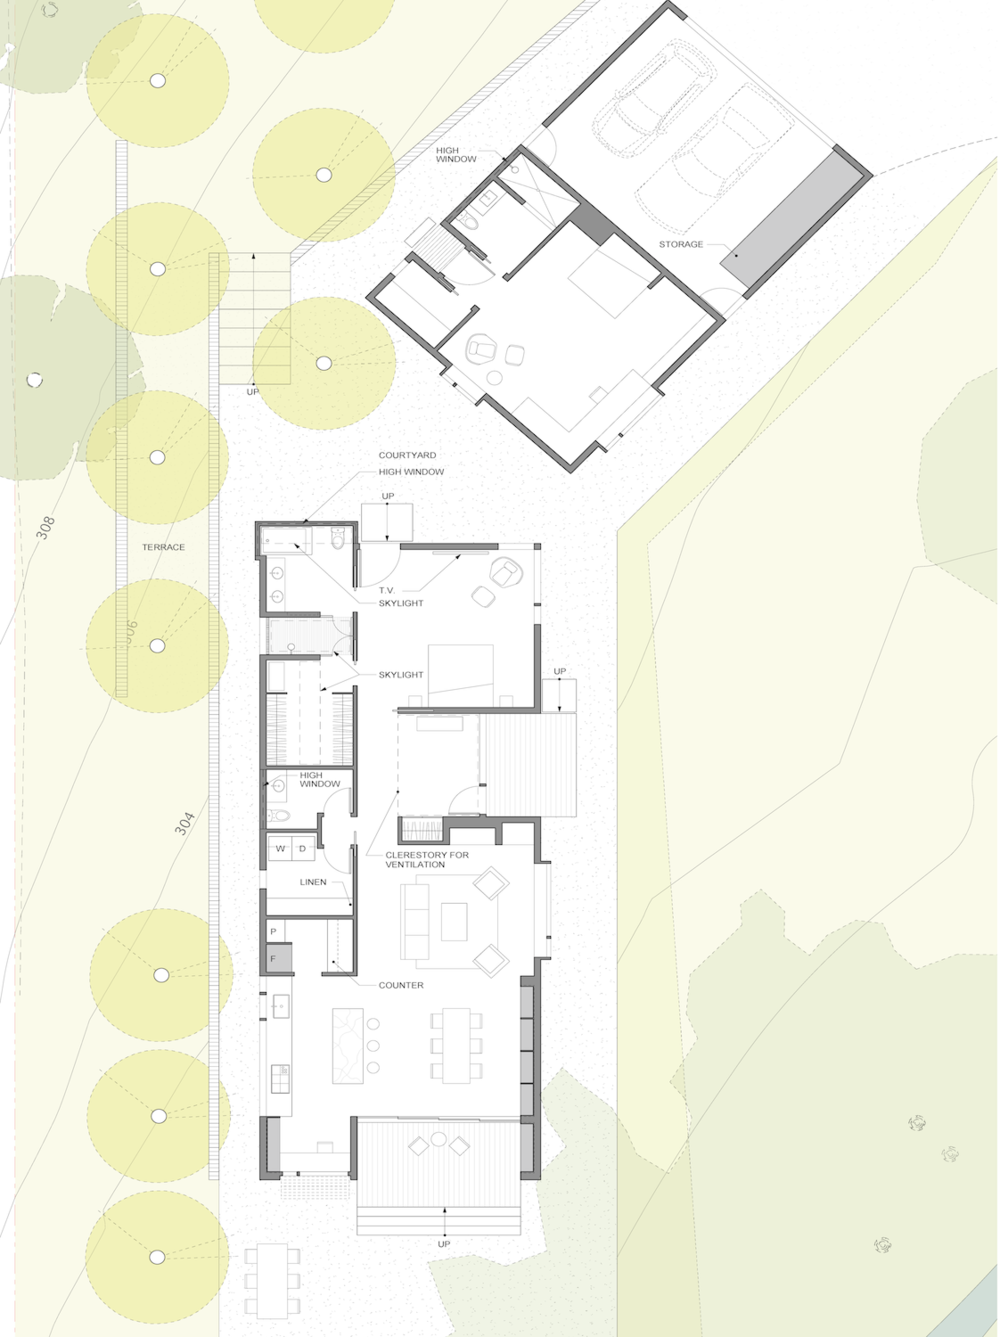 06-SD-Plan-04.16.13-Healdsburg Res.png